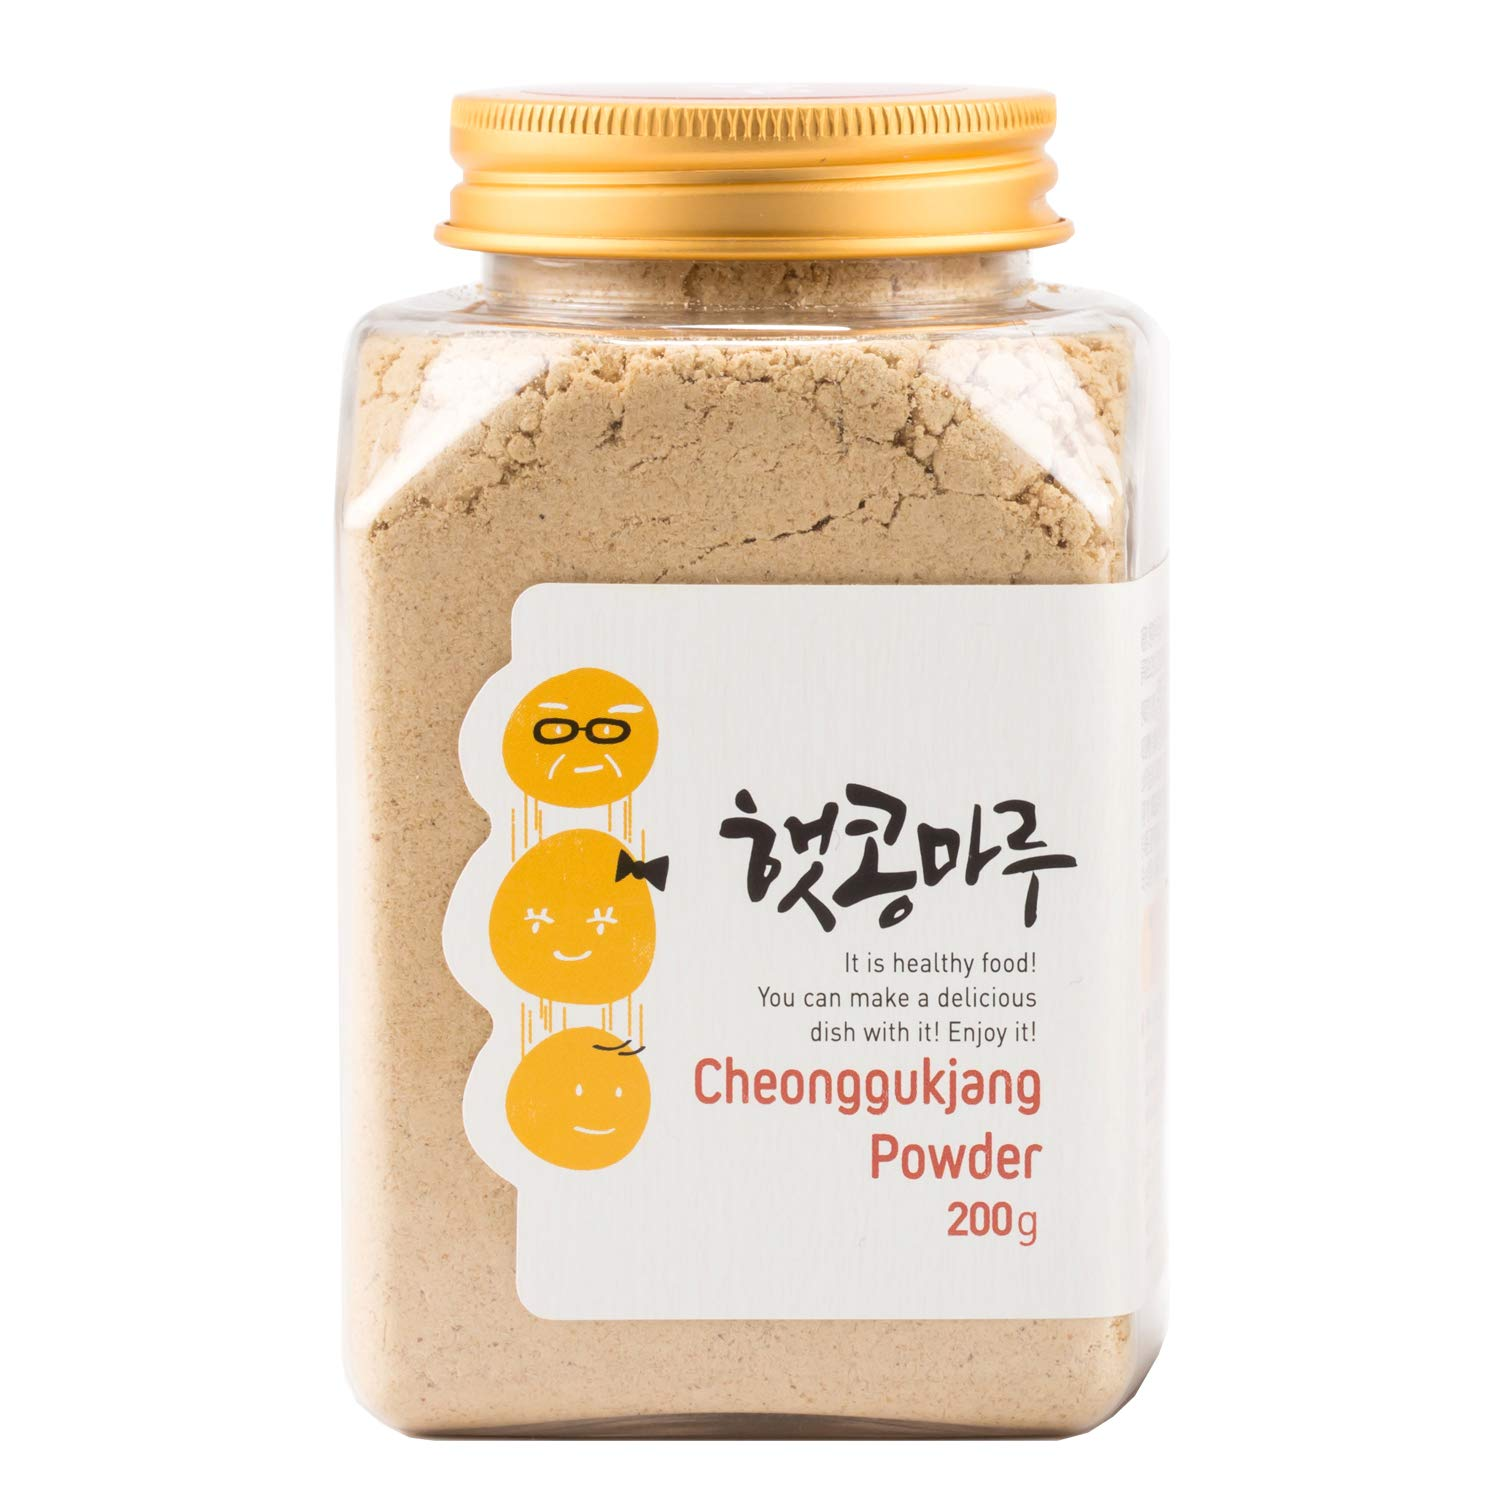 Soybean Natto Powder 100% Natural Nattokinase Poweder l Healthy Fermented Food 200g Cheongukjang Powder